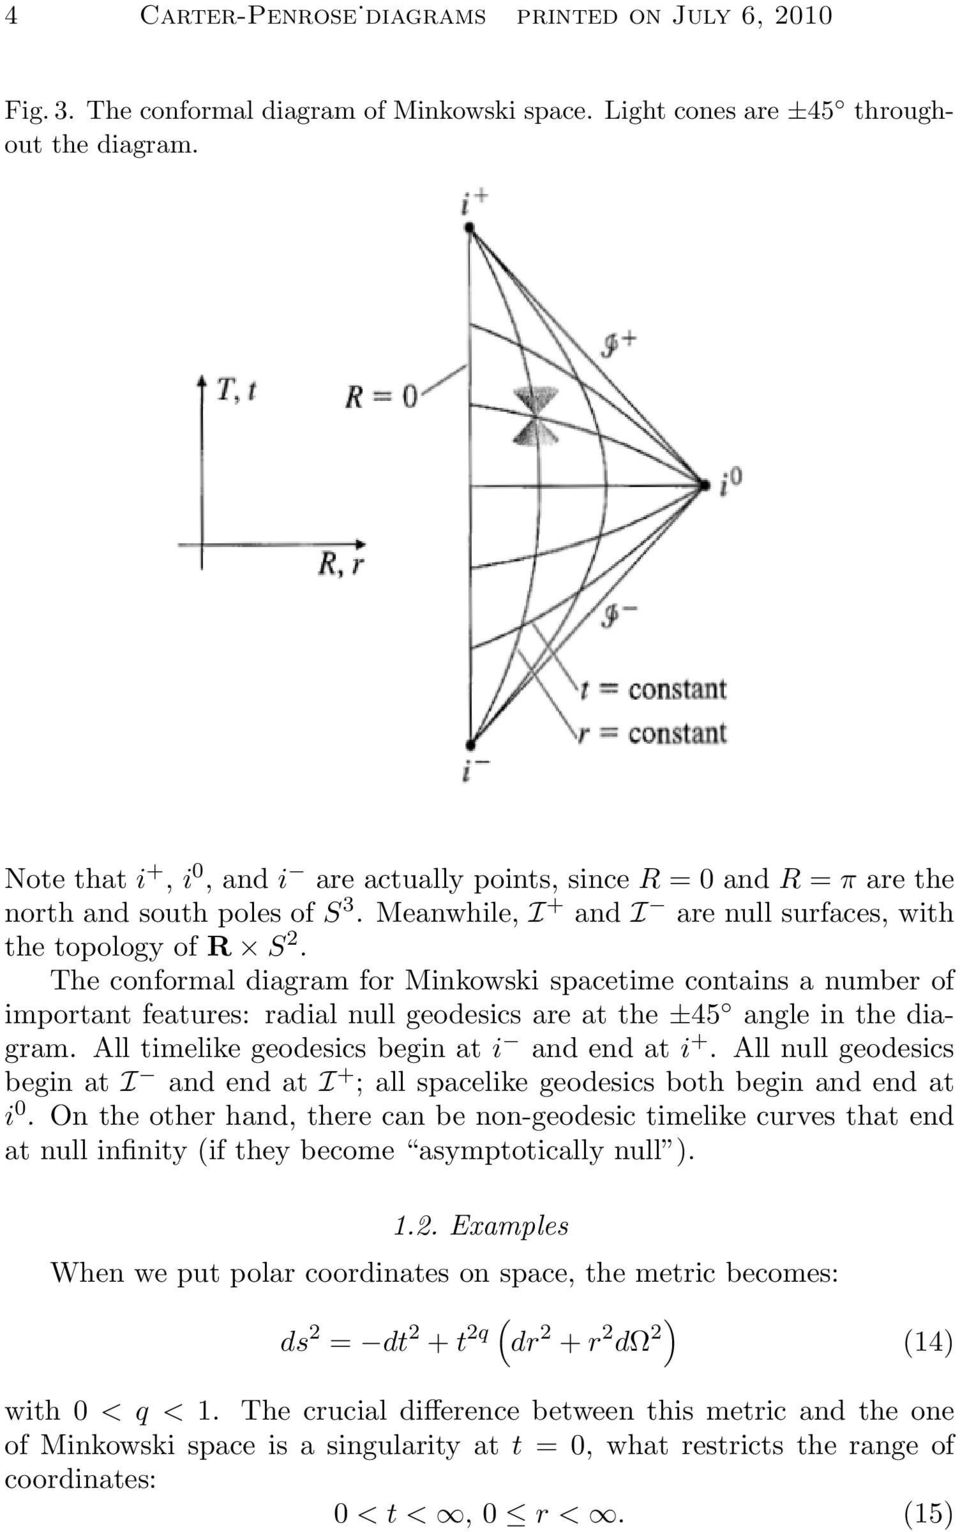 The confomal diagam fo Minkowski spacetime contains a numbe of impotant featues: adial null geodesics ae at the ±45 angle in the diagam. All timelike geodesics begin at i and end at i +.